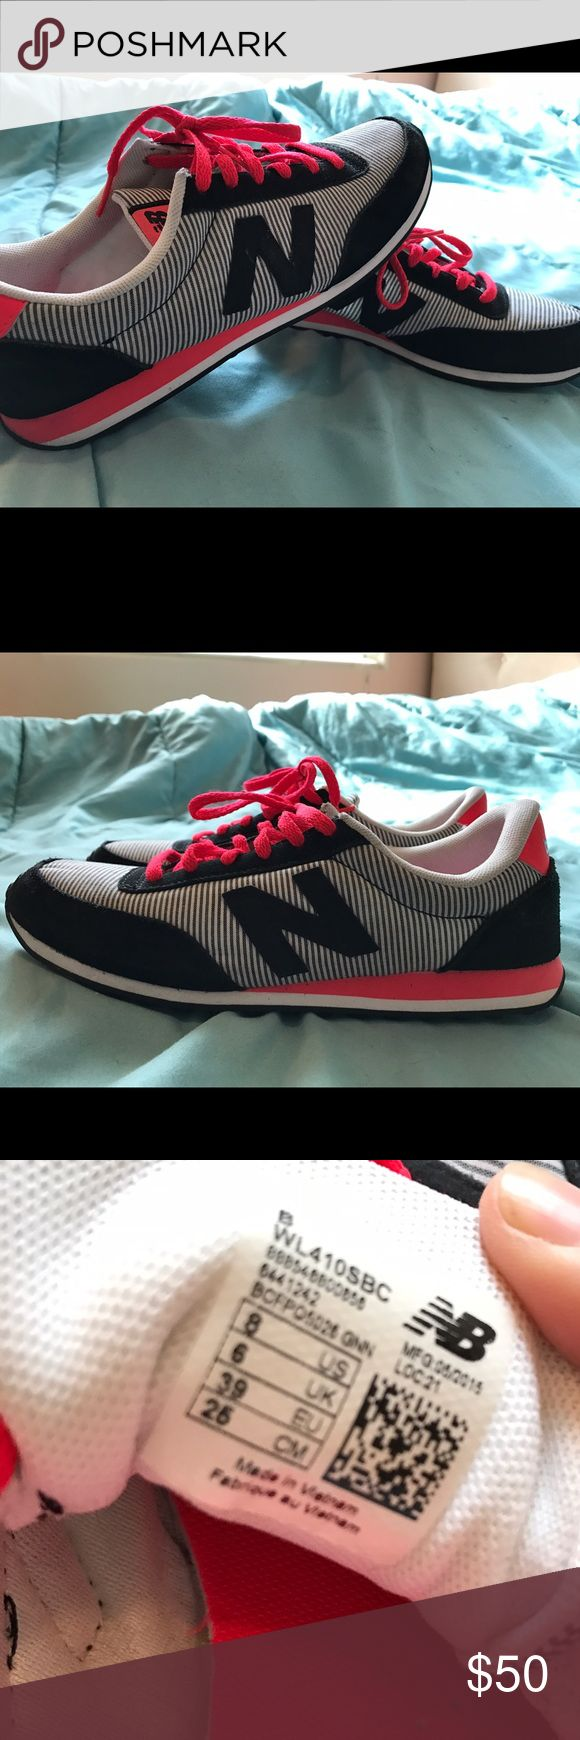 Women's New Balance size 8 Cute pink/white/black new balance shoes size 8 only worn a handful of times New Balance Shoes Athletic Shoes